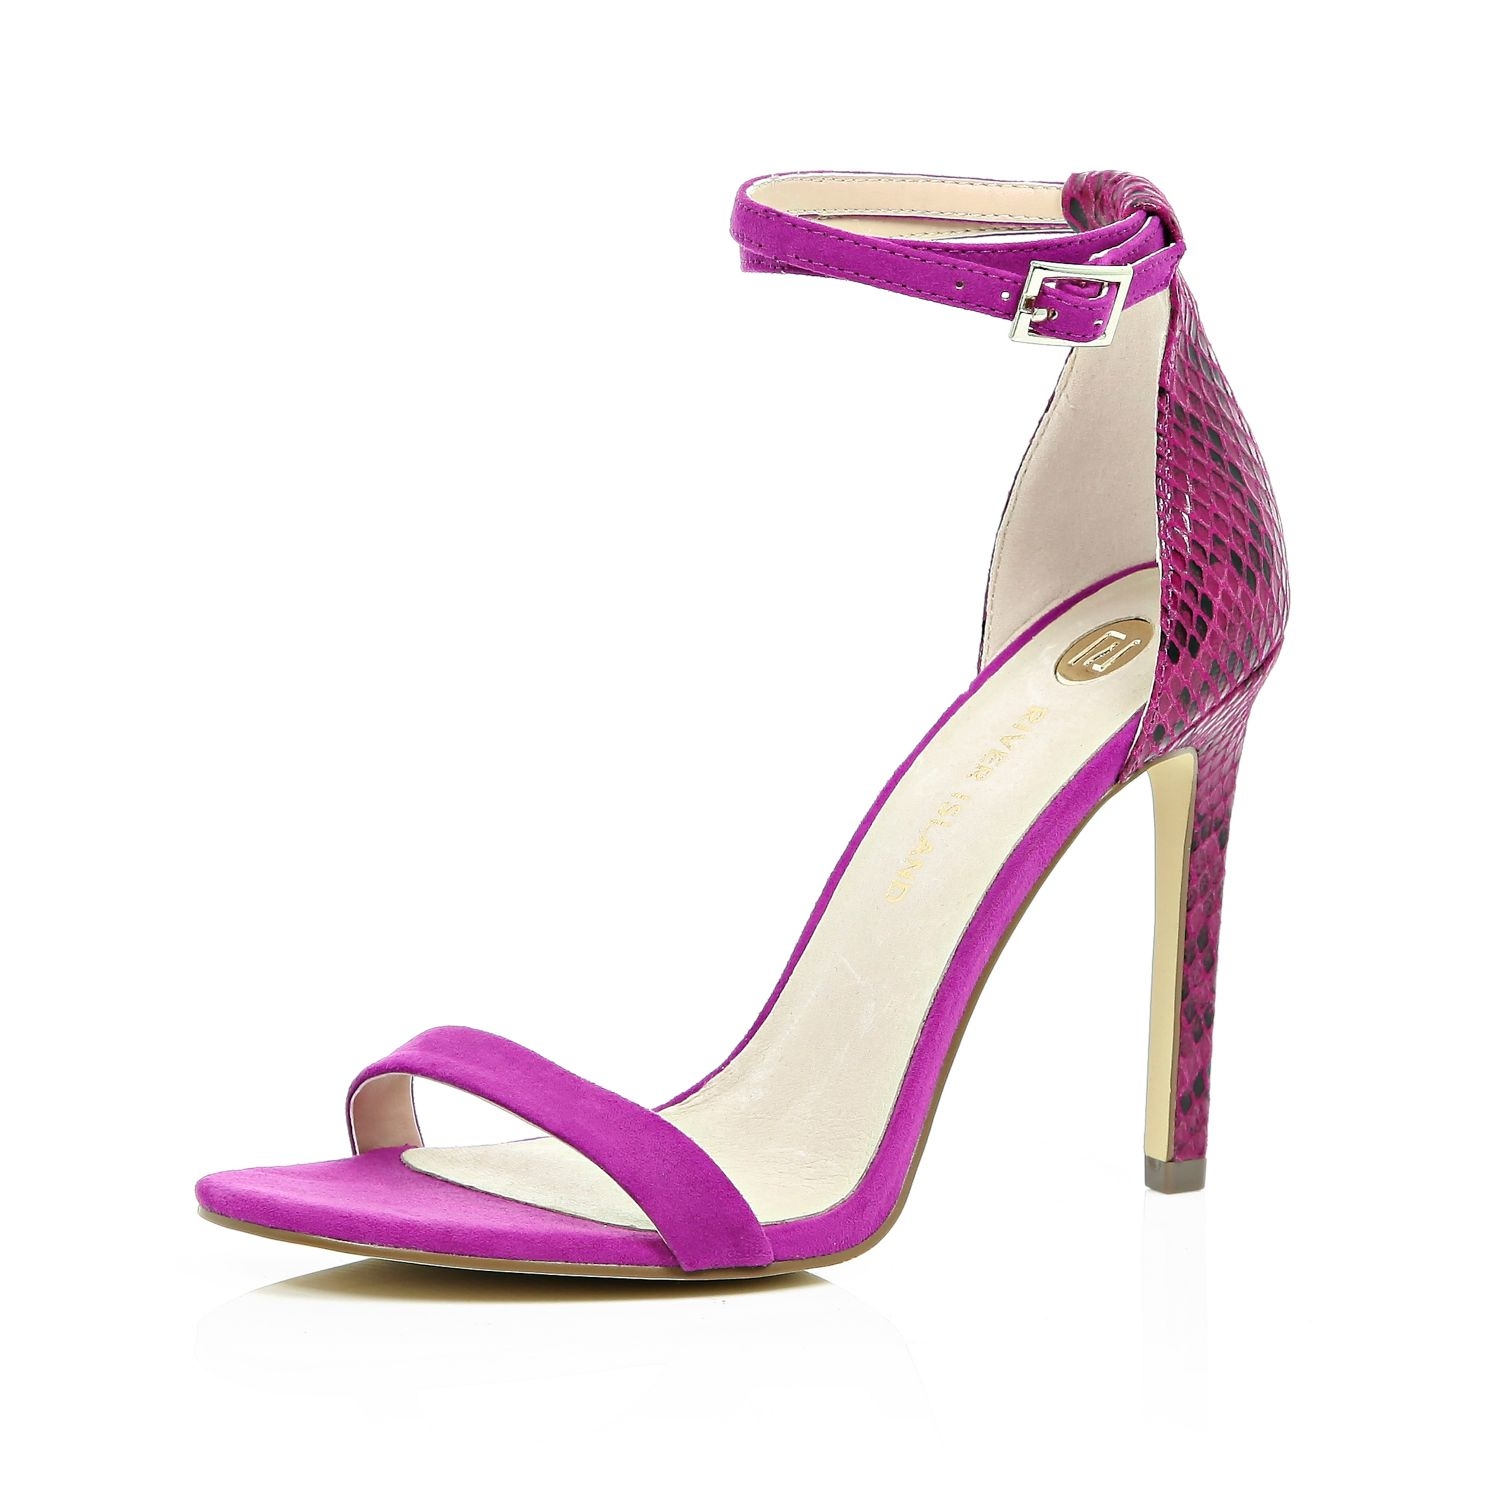 River island Bright Pink Barely There Sandal Heels in Pink | Lyst